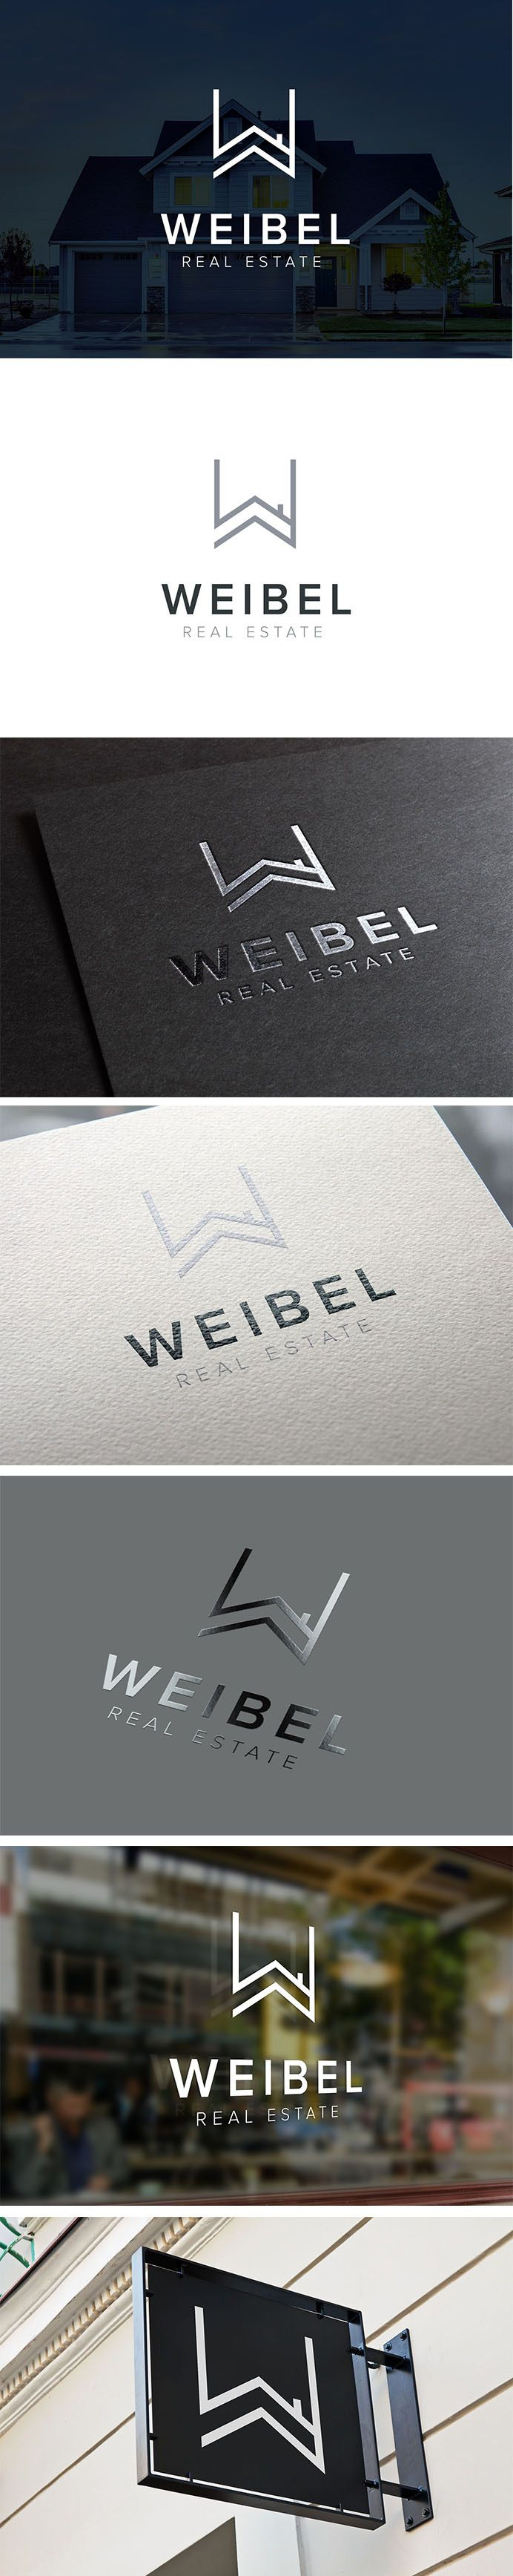 Weibel Real Estate Logo Design, Property Management Brand Identity  |  Letter W, mark, roof, residence, villa, house, property development, Agence Immobilière,  |  Weibel Real Estate, Geneva Switzerland  |  Celine Le Duigou, Freelance Graphic Designer, Perth Australia